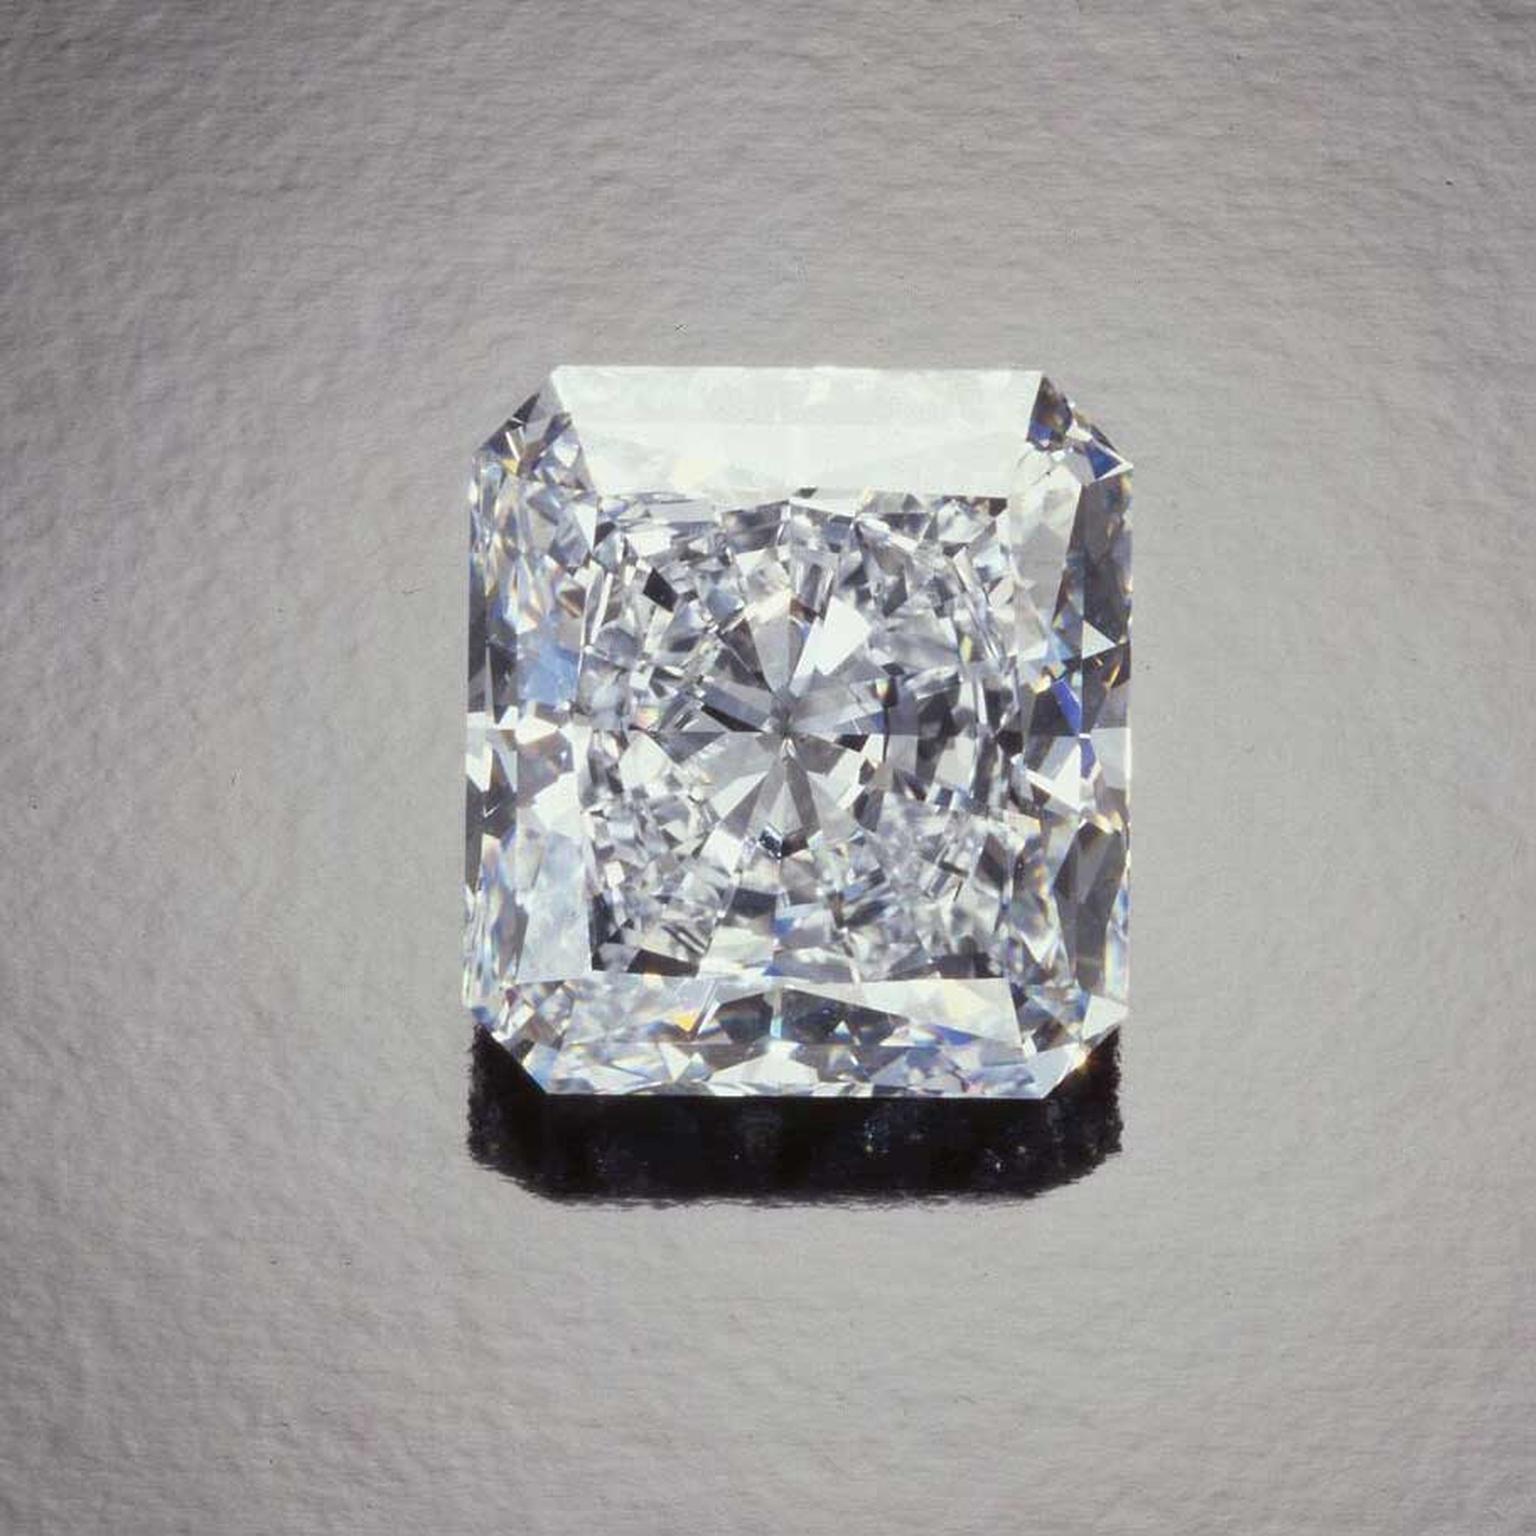 The Star of Happiness 100.36 carats, DIF diamond sold at Sotheby's Geneva in 1993 for US$ 11.9 million or US$118,397 per carat.